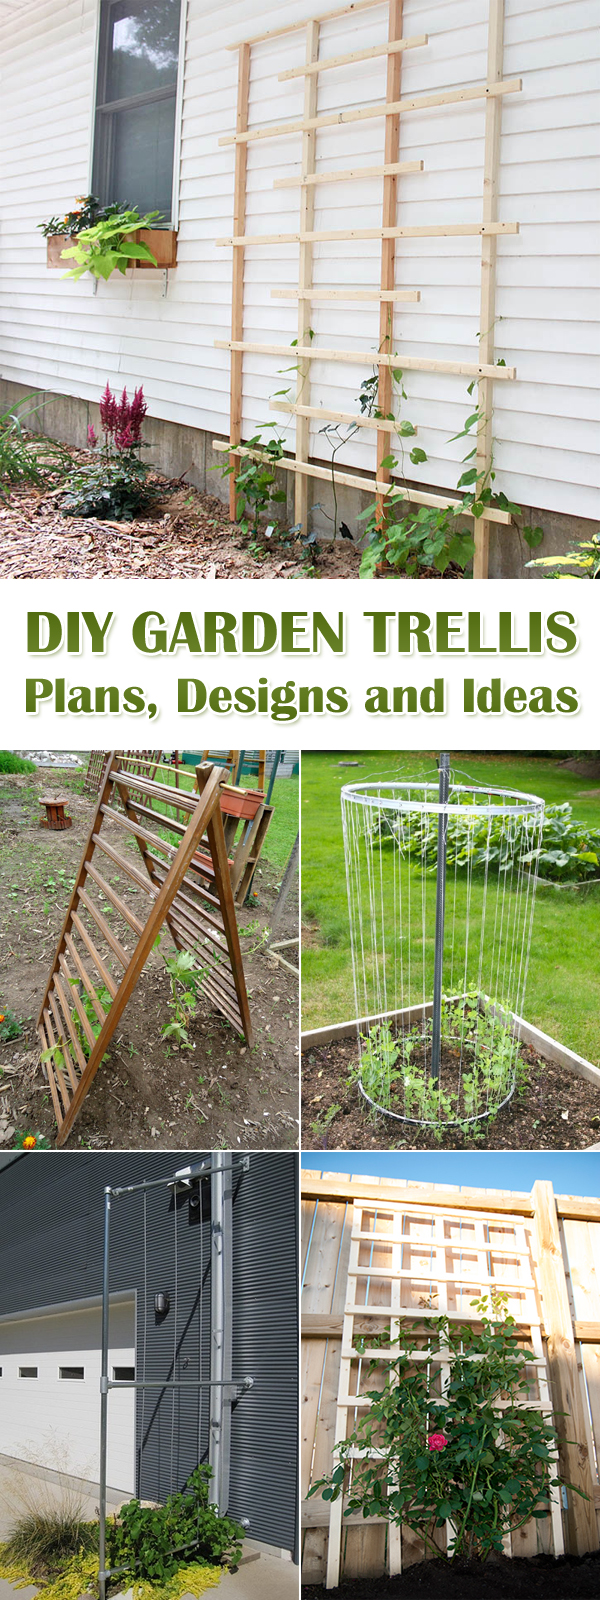 Trellis design amazing best ideas about wooden trellis on for Garden trellis ideas